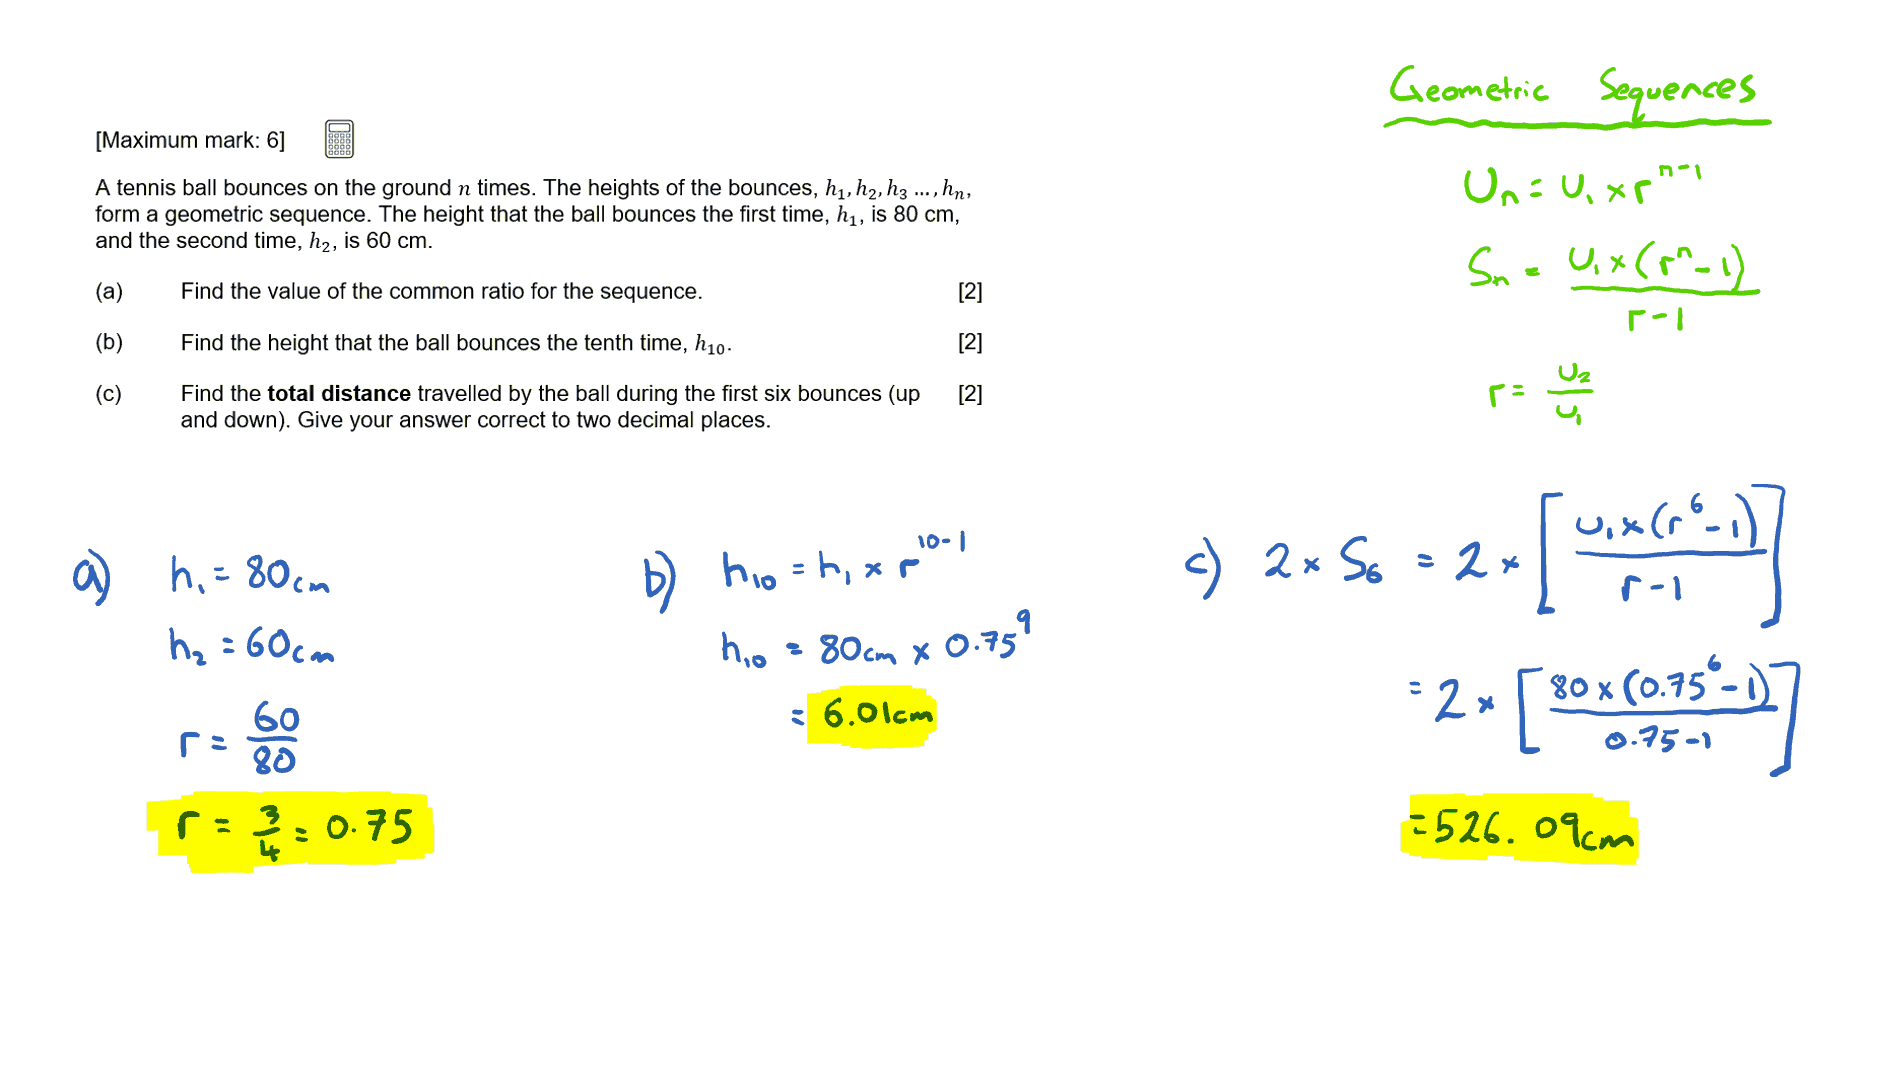 IB Maths Studies Questionbank - Sequences and Series